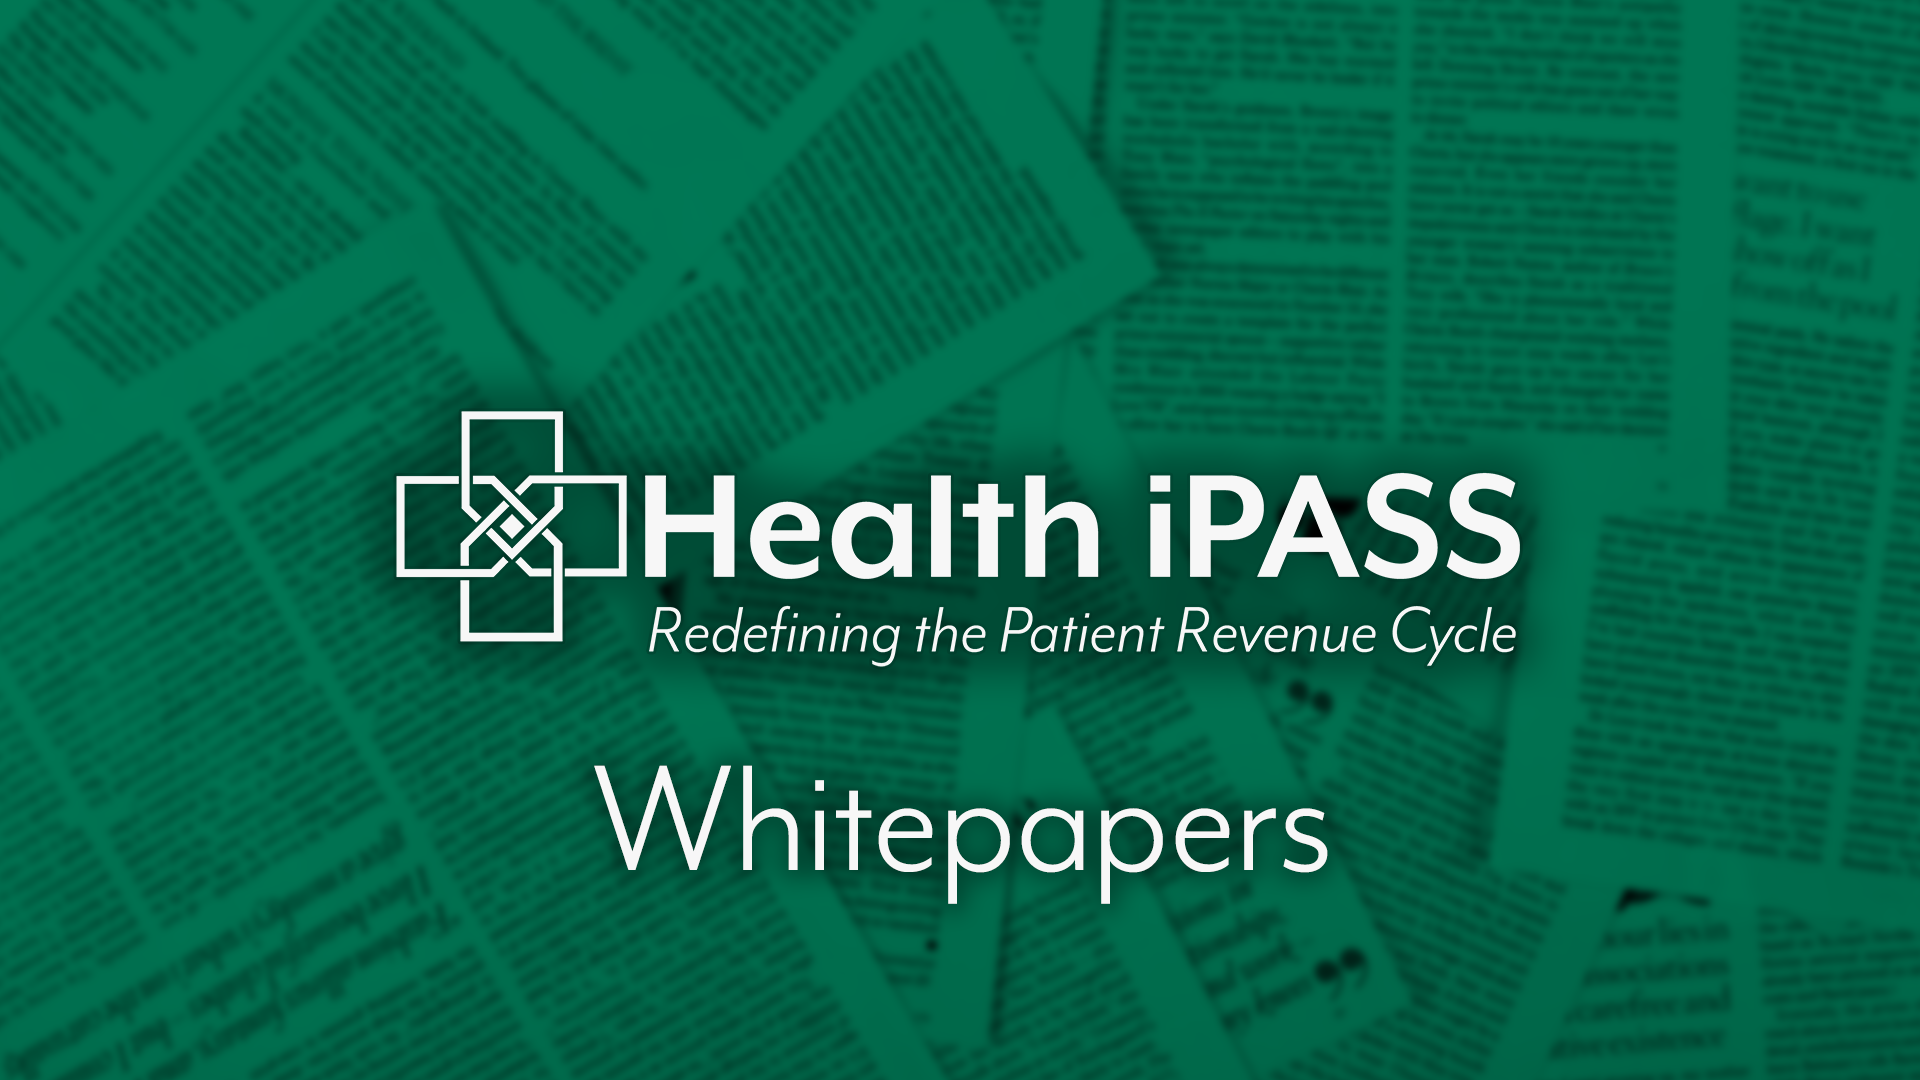 HiP White Papers